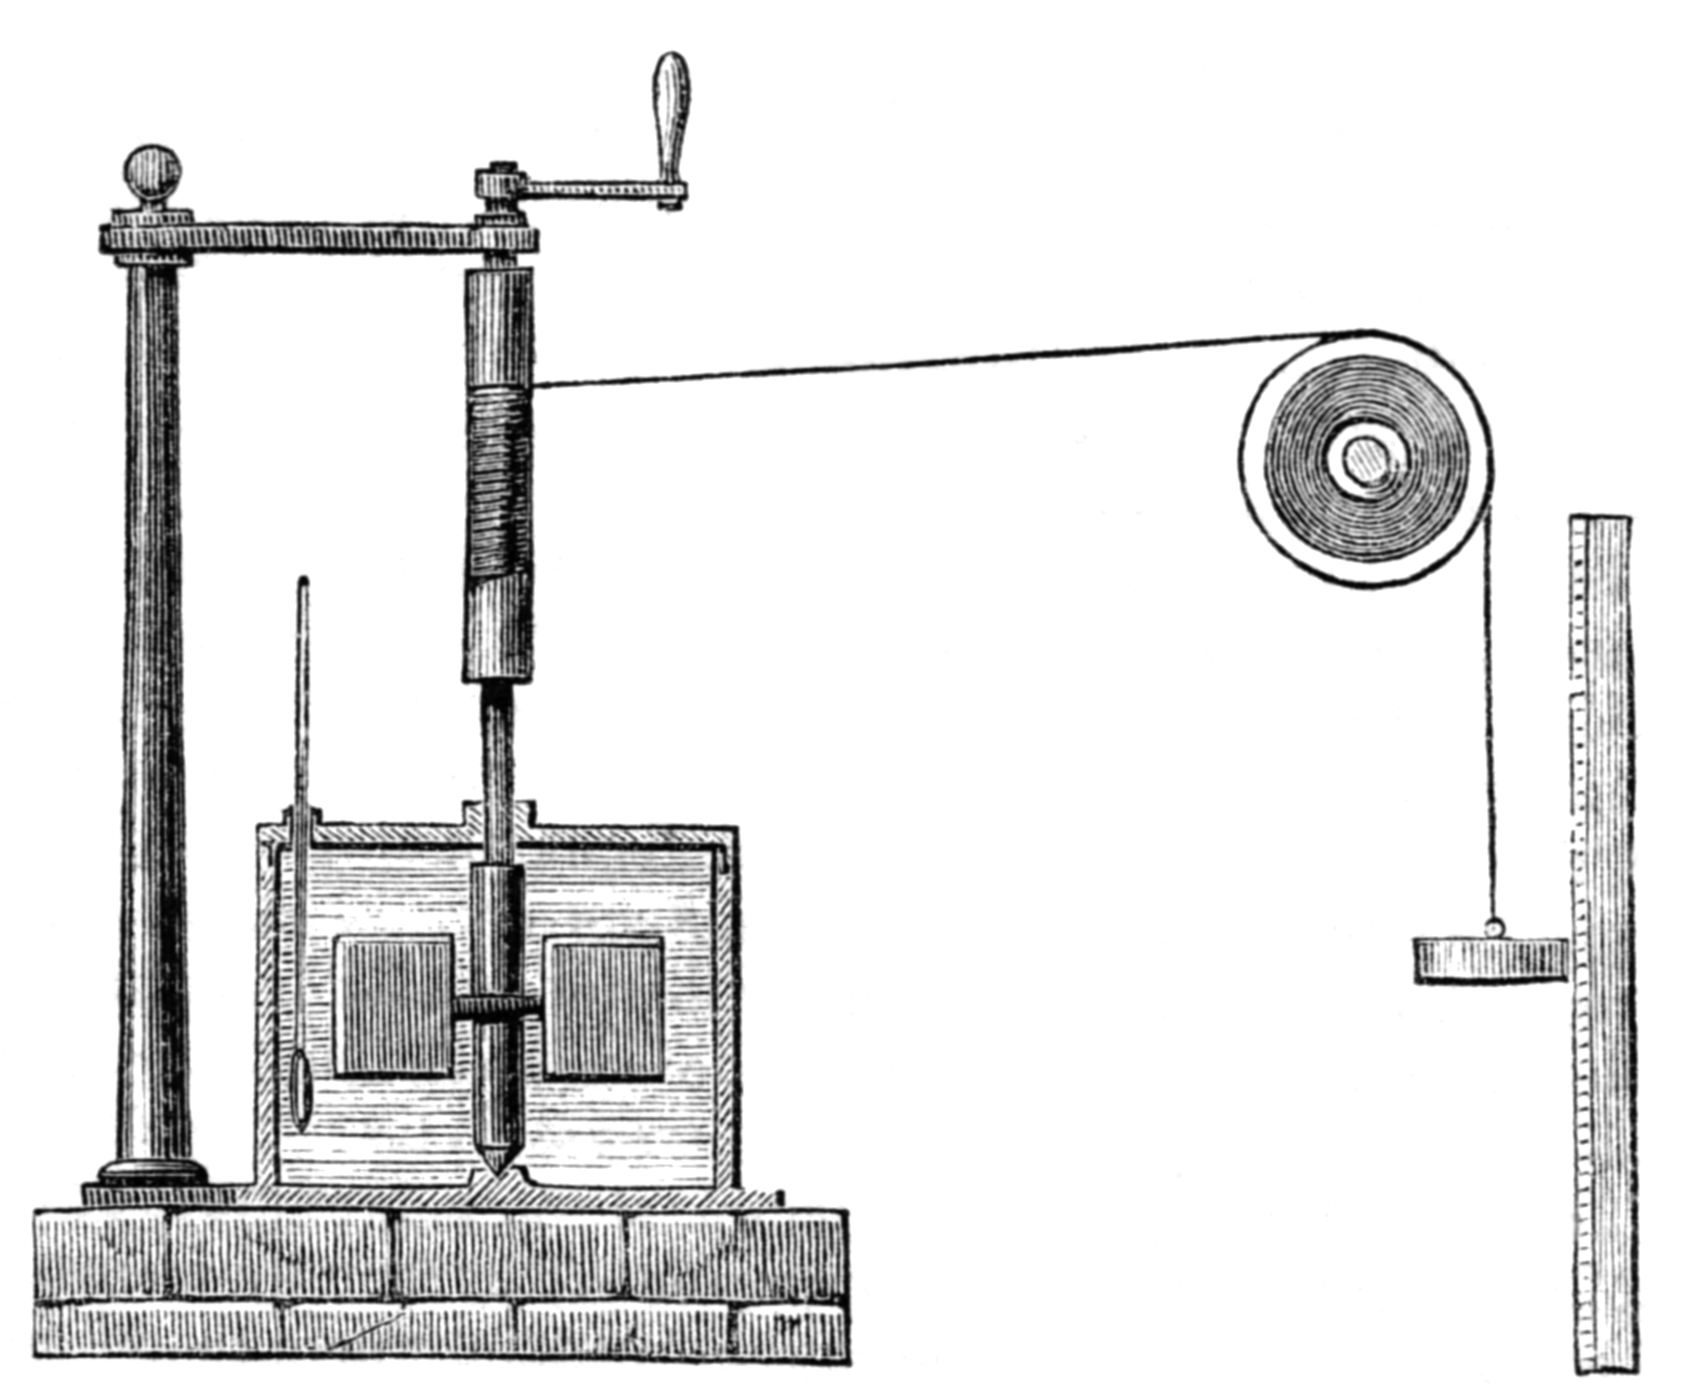 Joule's experiment schematic wikipedia